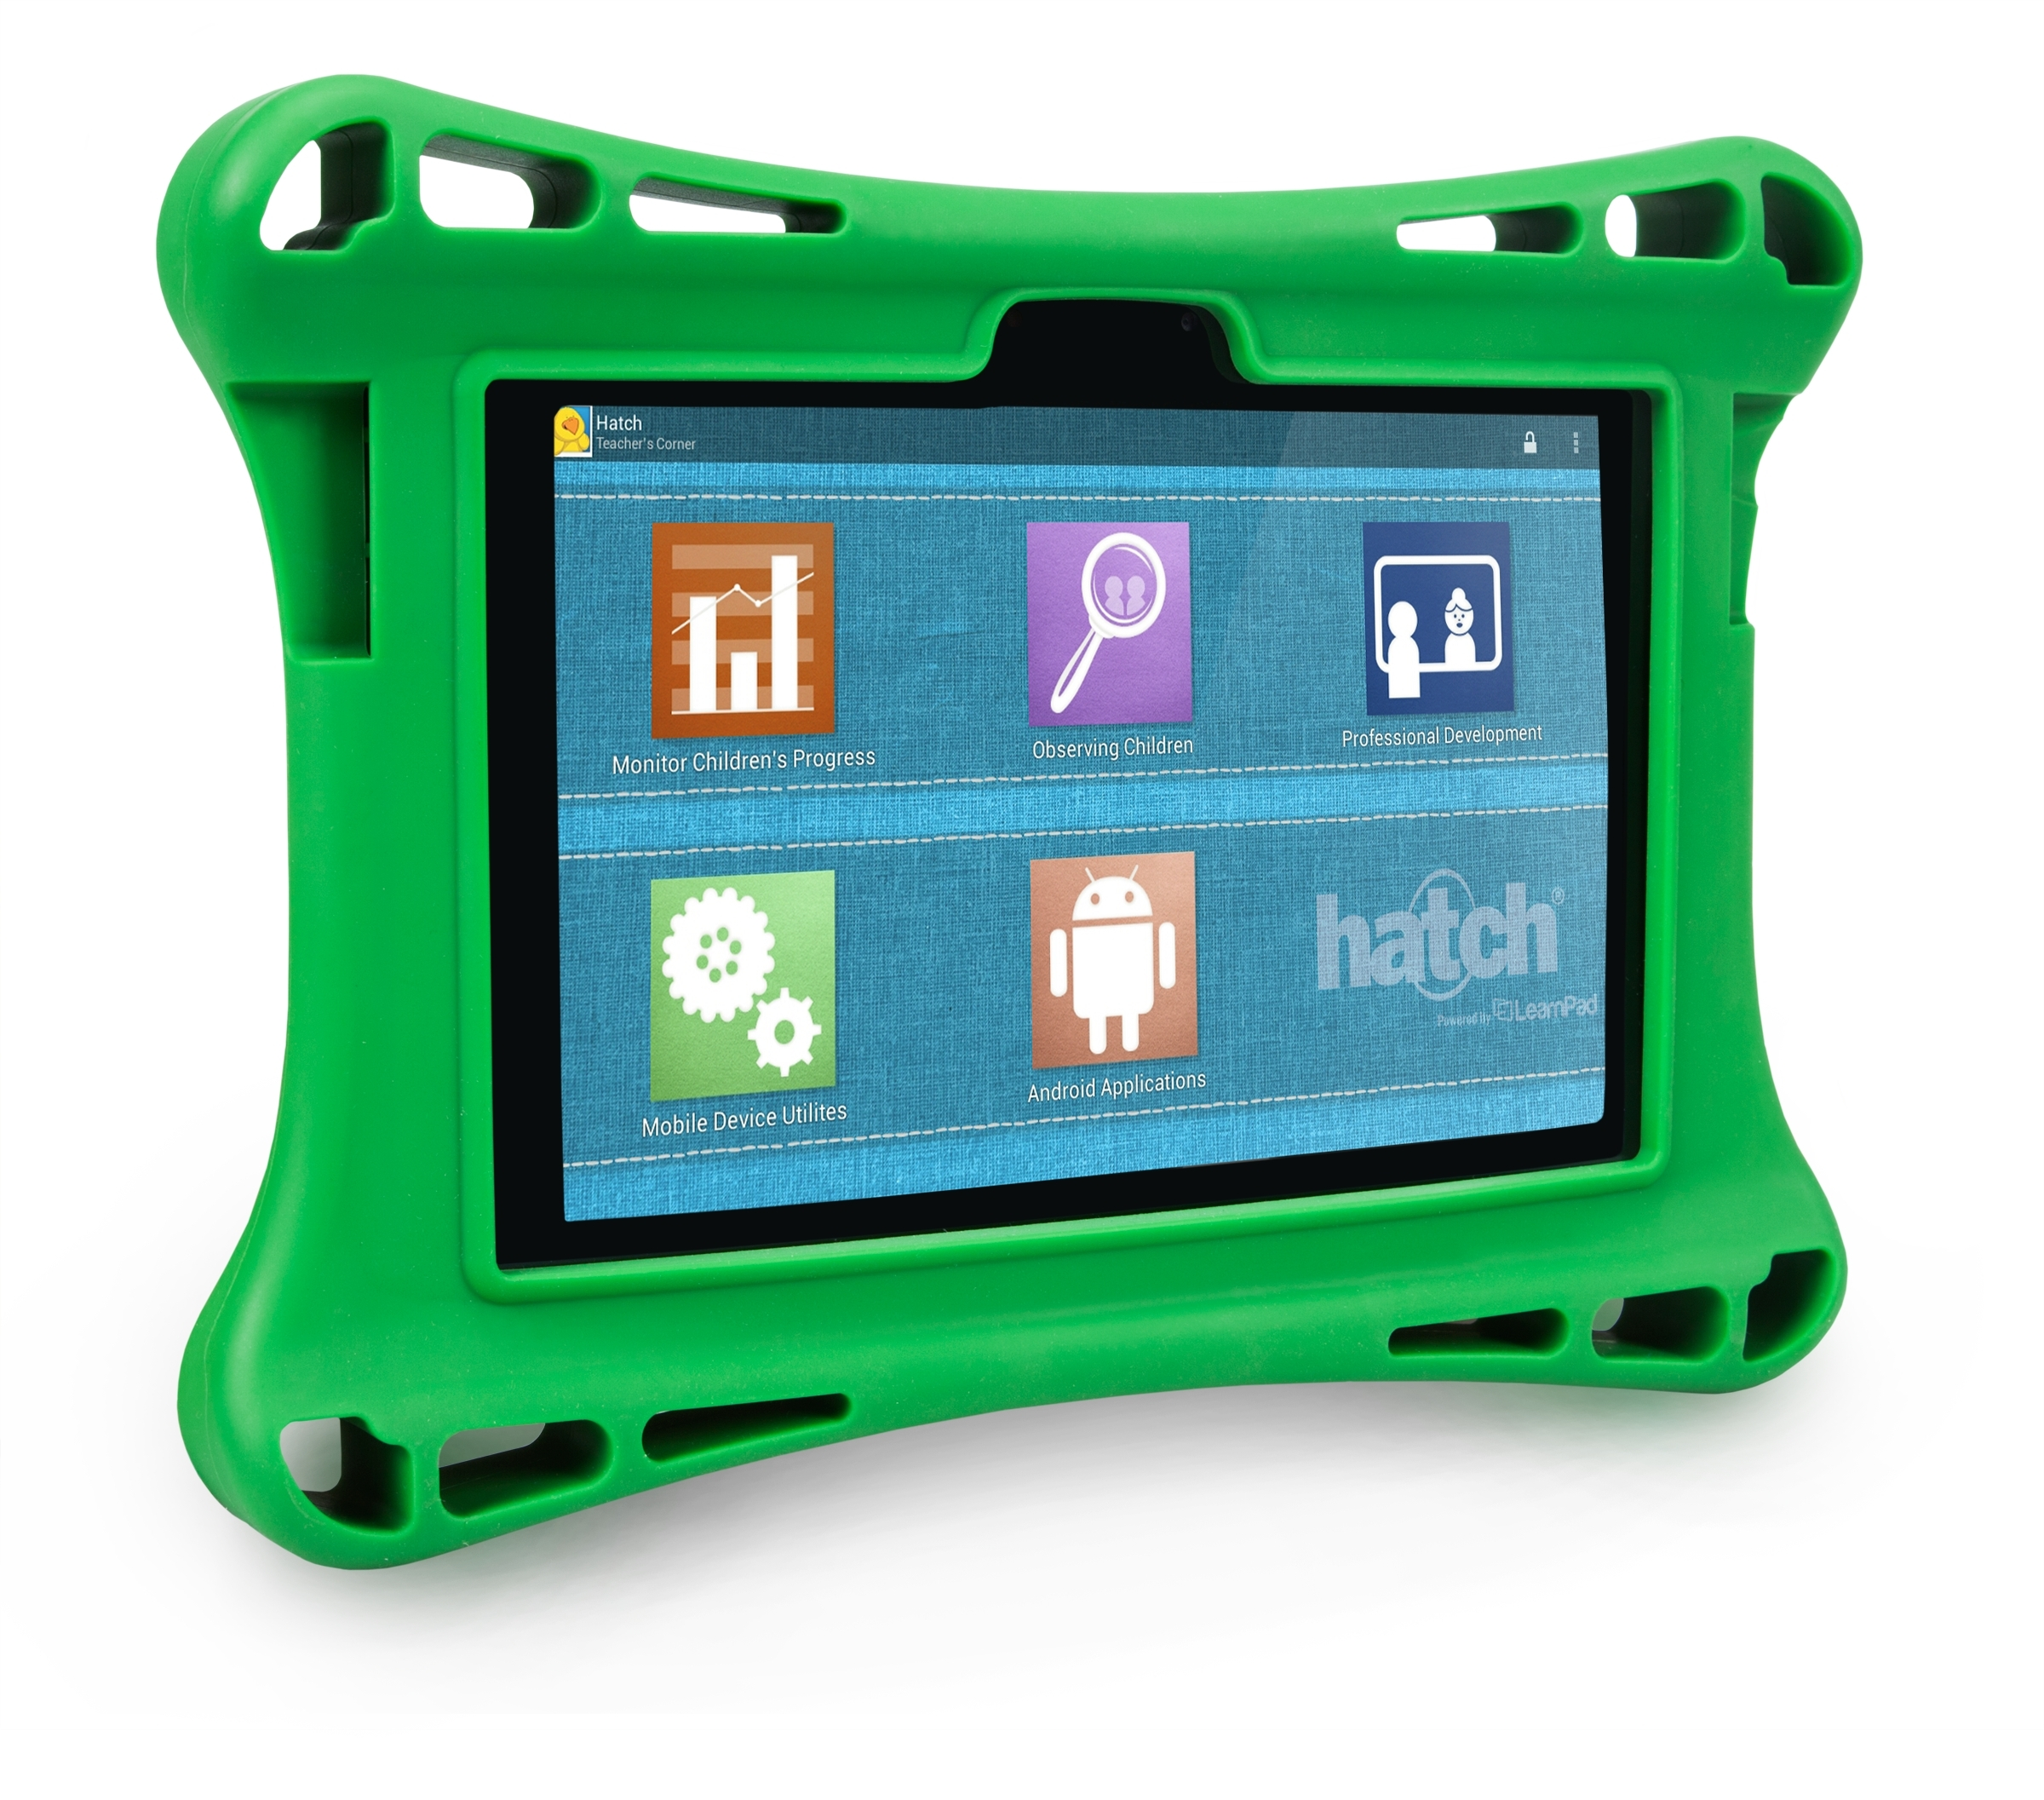 """Among the iStartSmart 4.0 updates is the addition of a QR Code reader that allows Hatch to create custom tablet environments. Shown here is the """"Teacher's Corner"""" where child progress data is accessed. (Photo: Business Wire)"""